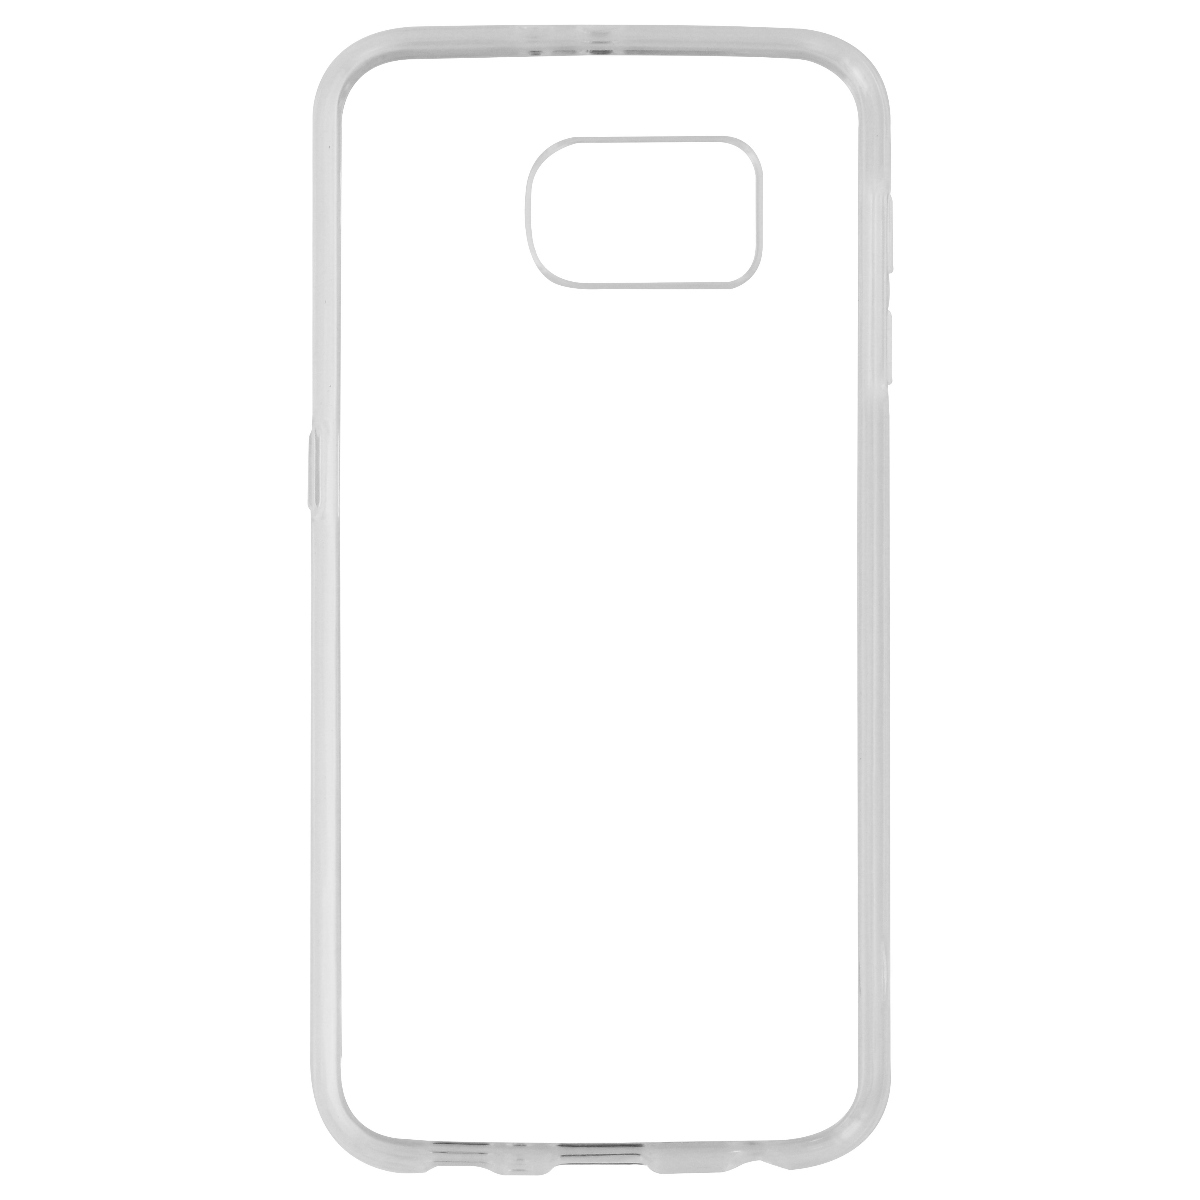 Insignia Soft Shell Case Protective Cover for Samsung Galaxy S6 - Clear